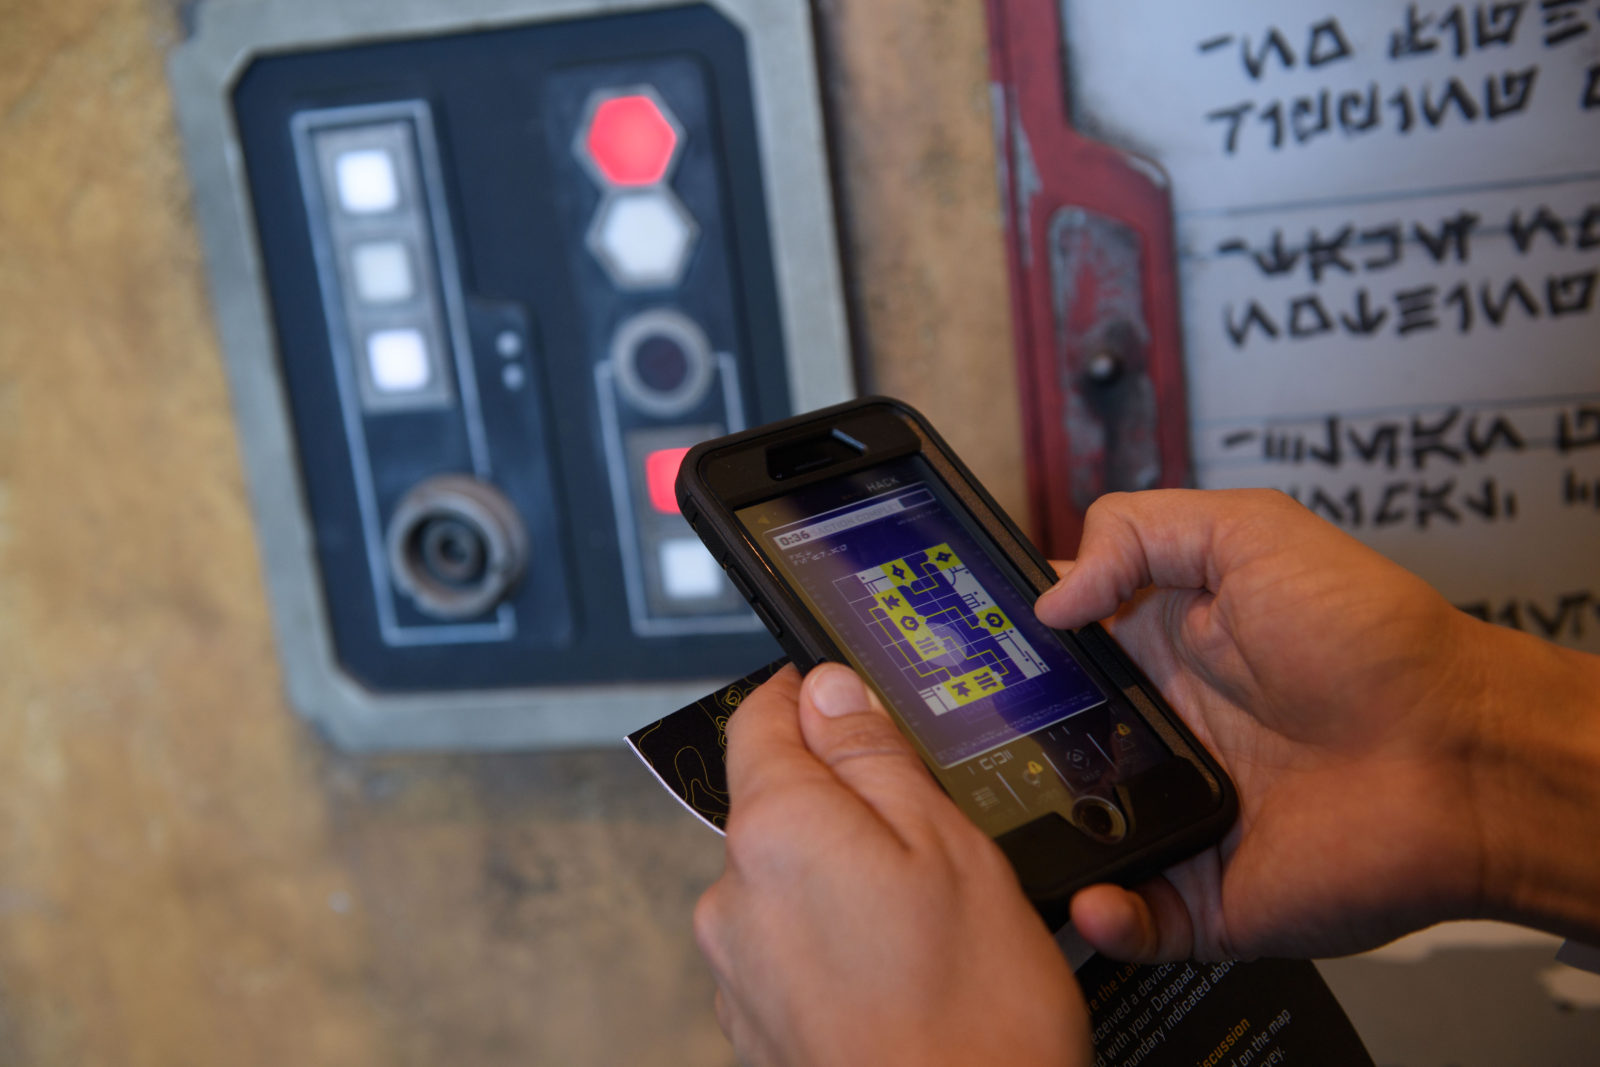 Star Wars: Galaxy's Edge Batuu Disney's Hollywood Studios Play Disney Parks App